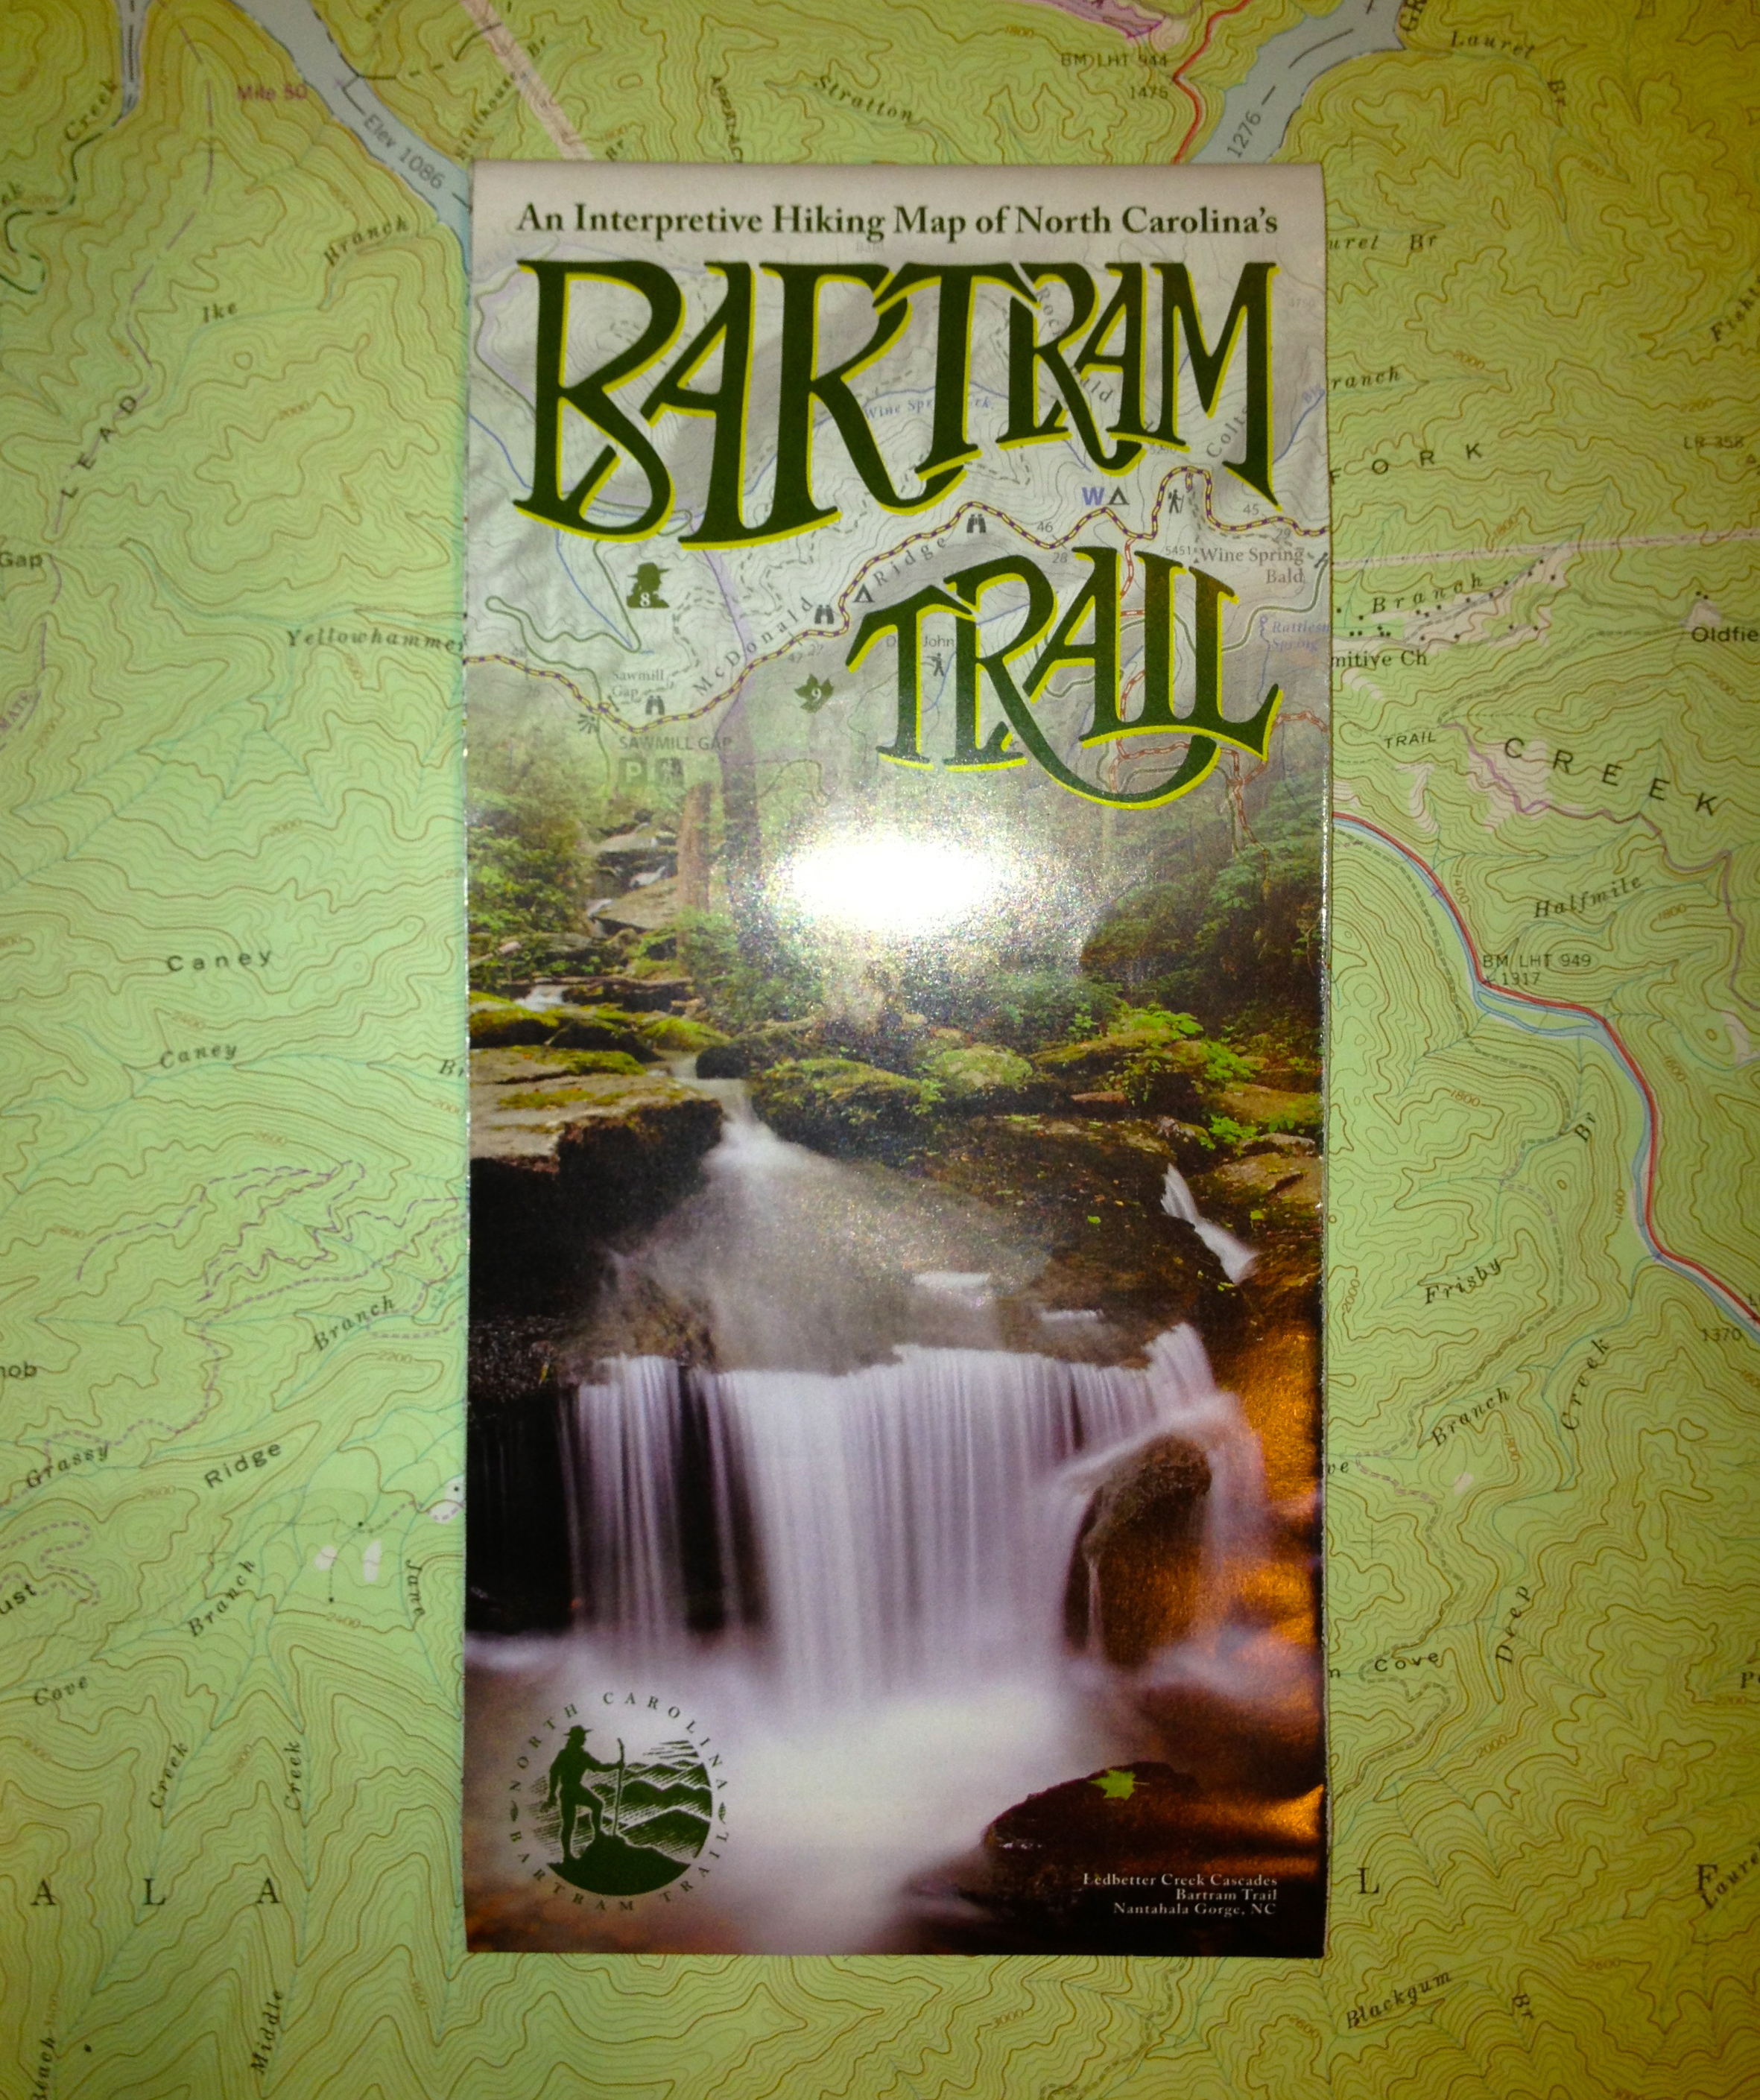 Bartram Trail Map